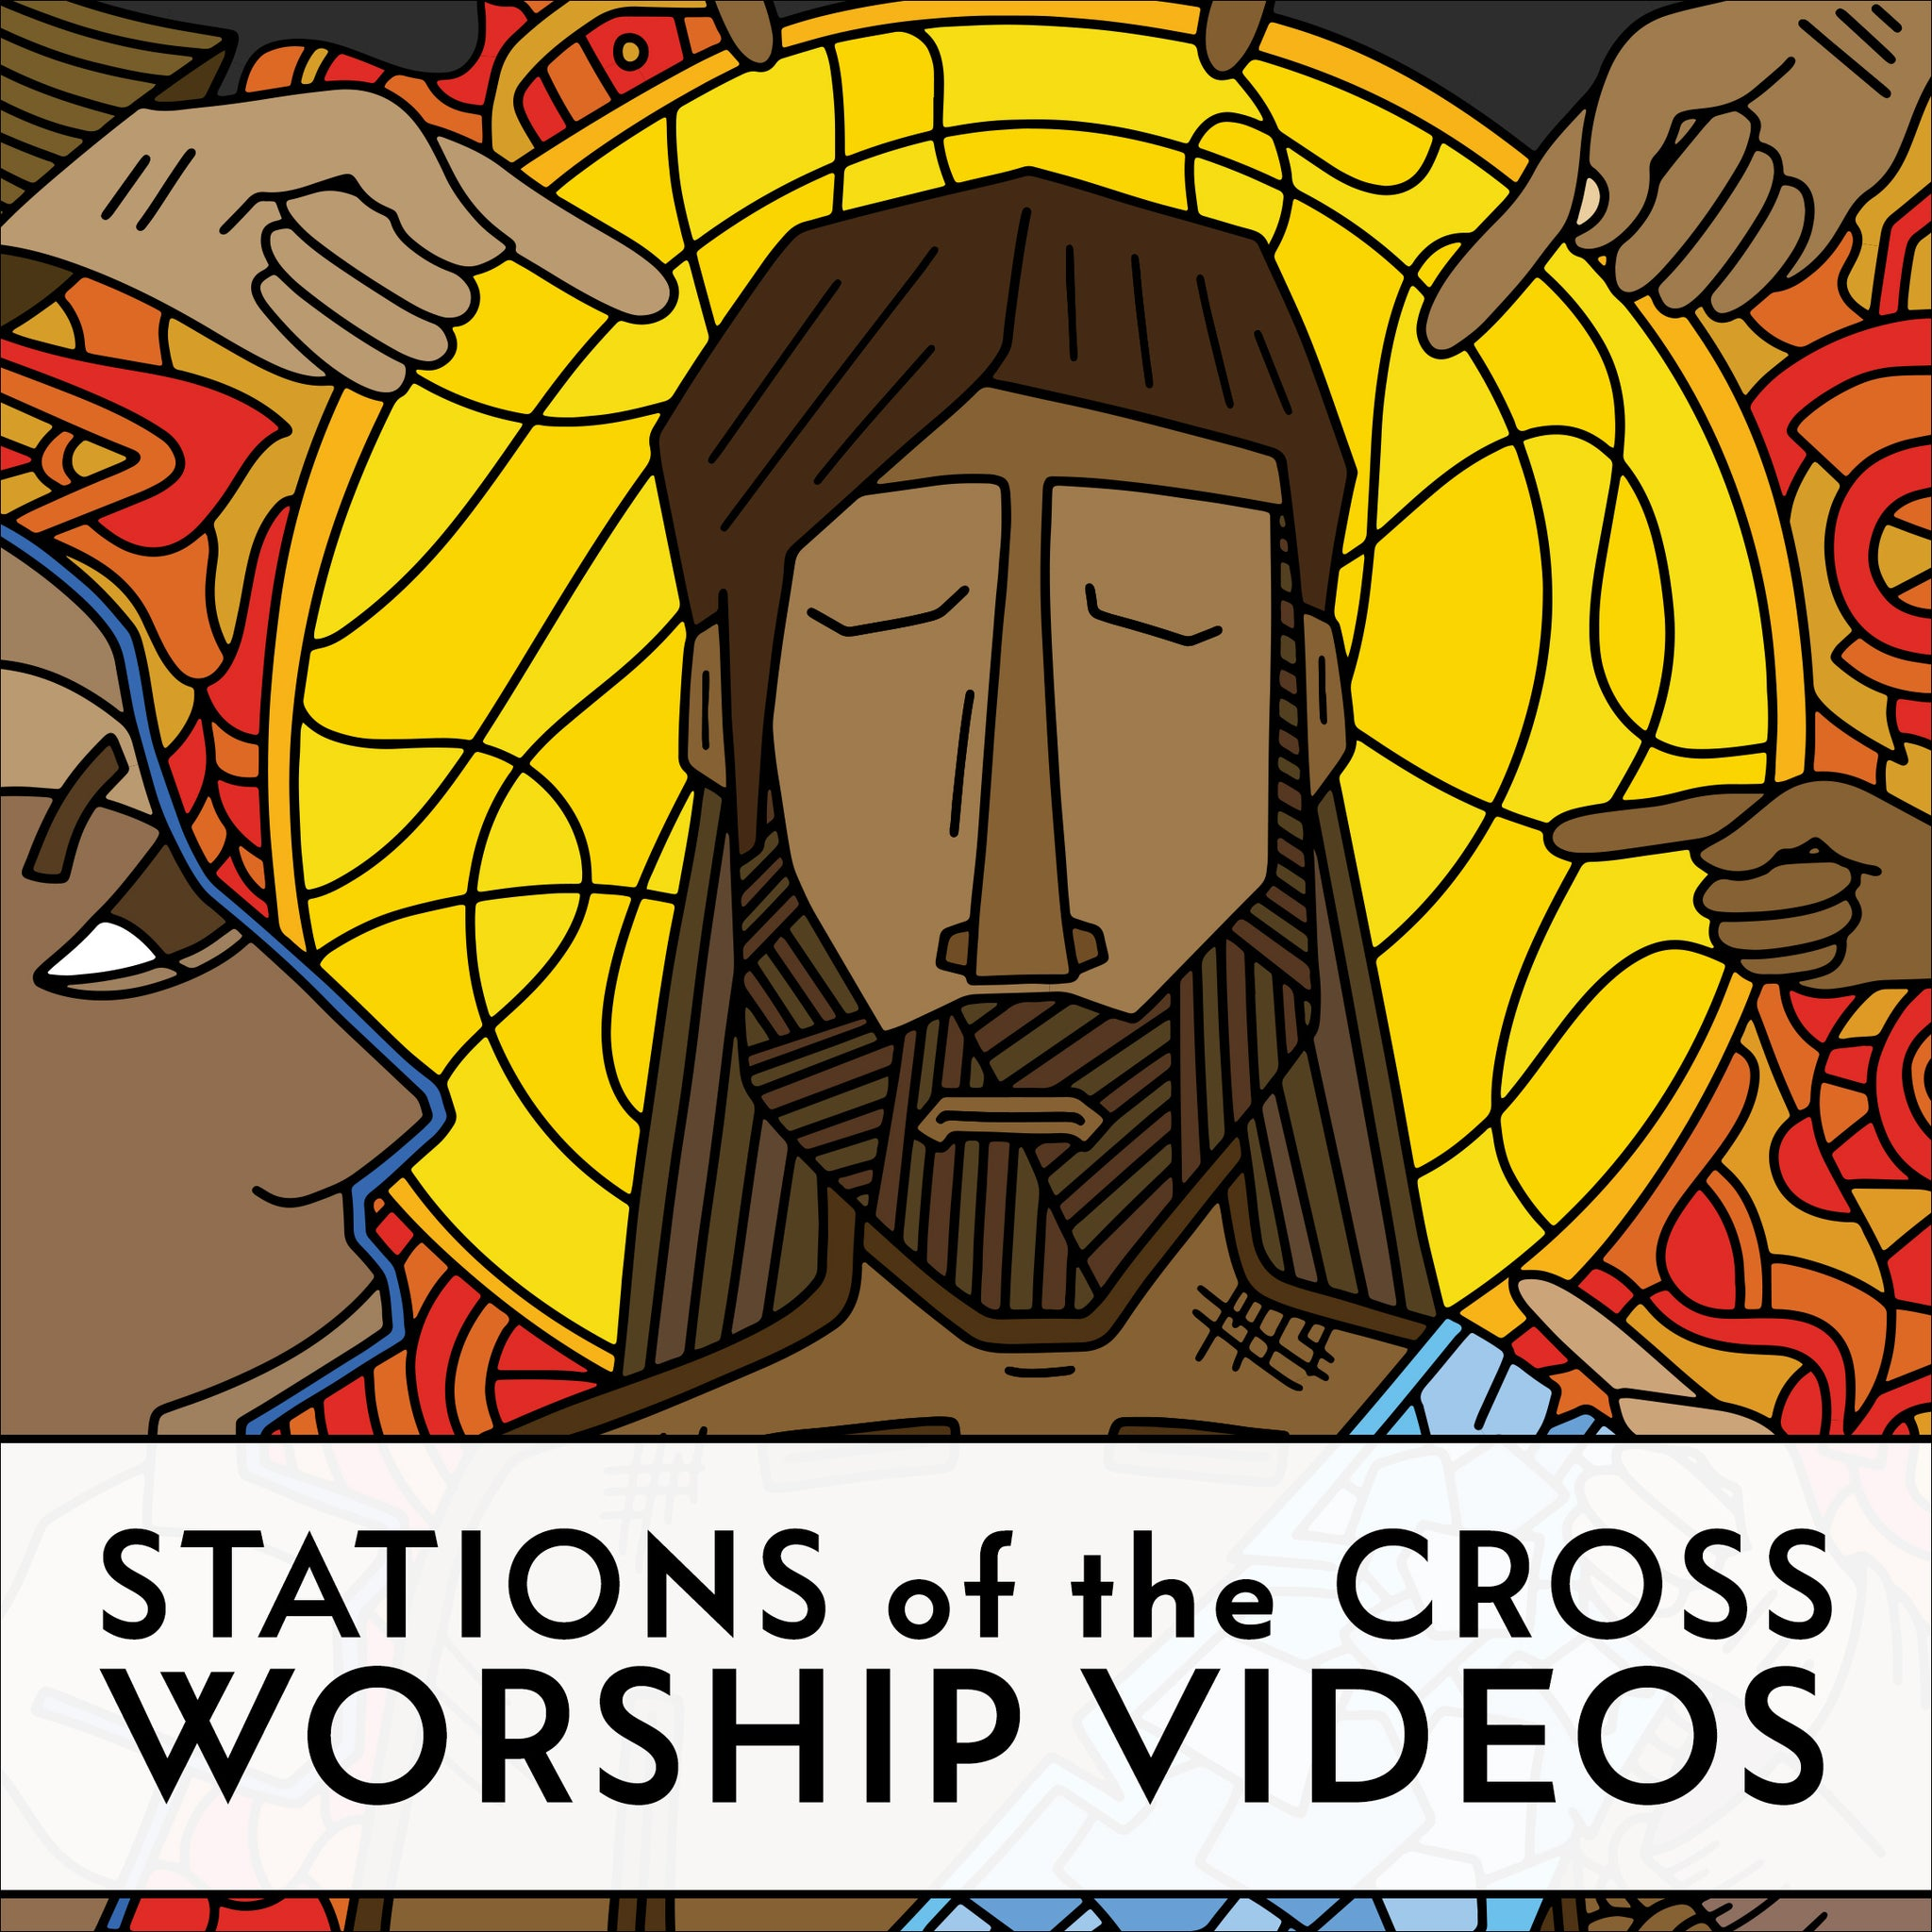 Stations of the Cross Worship Videos